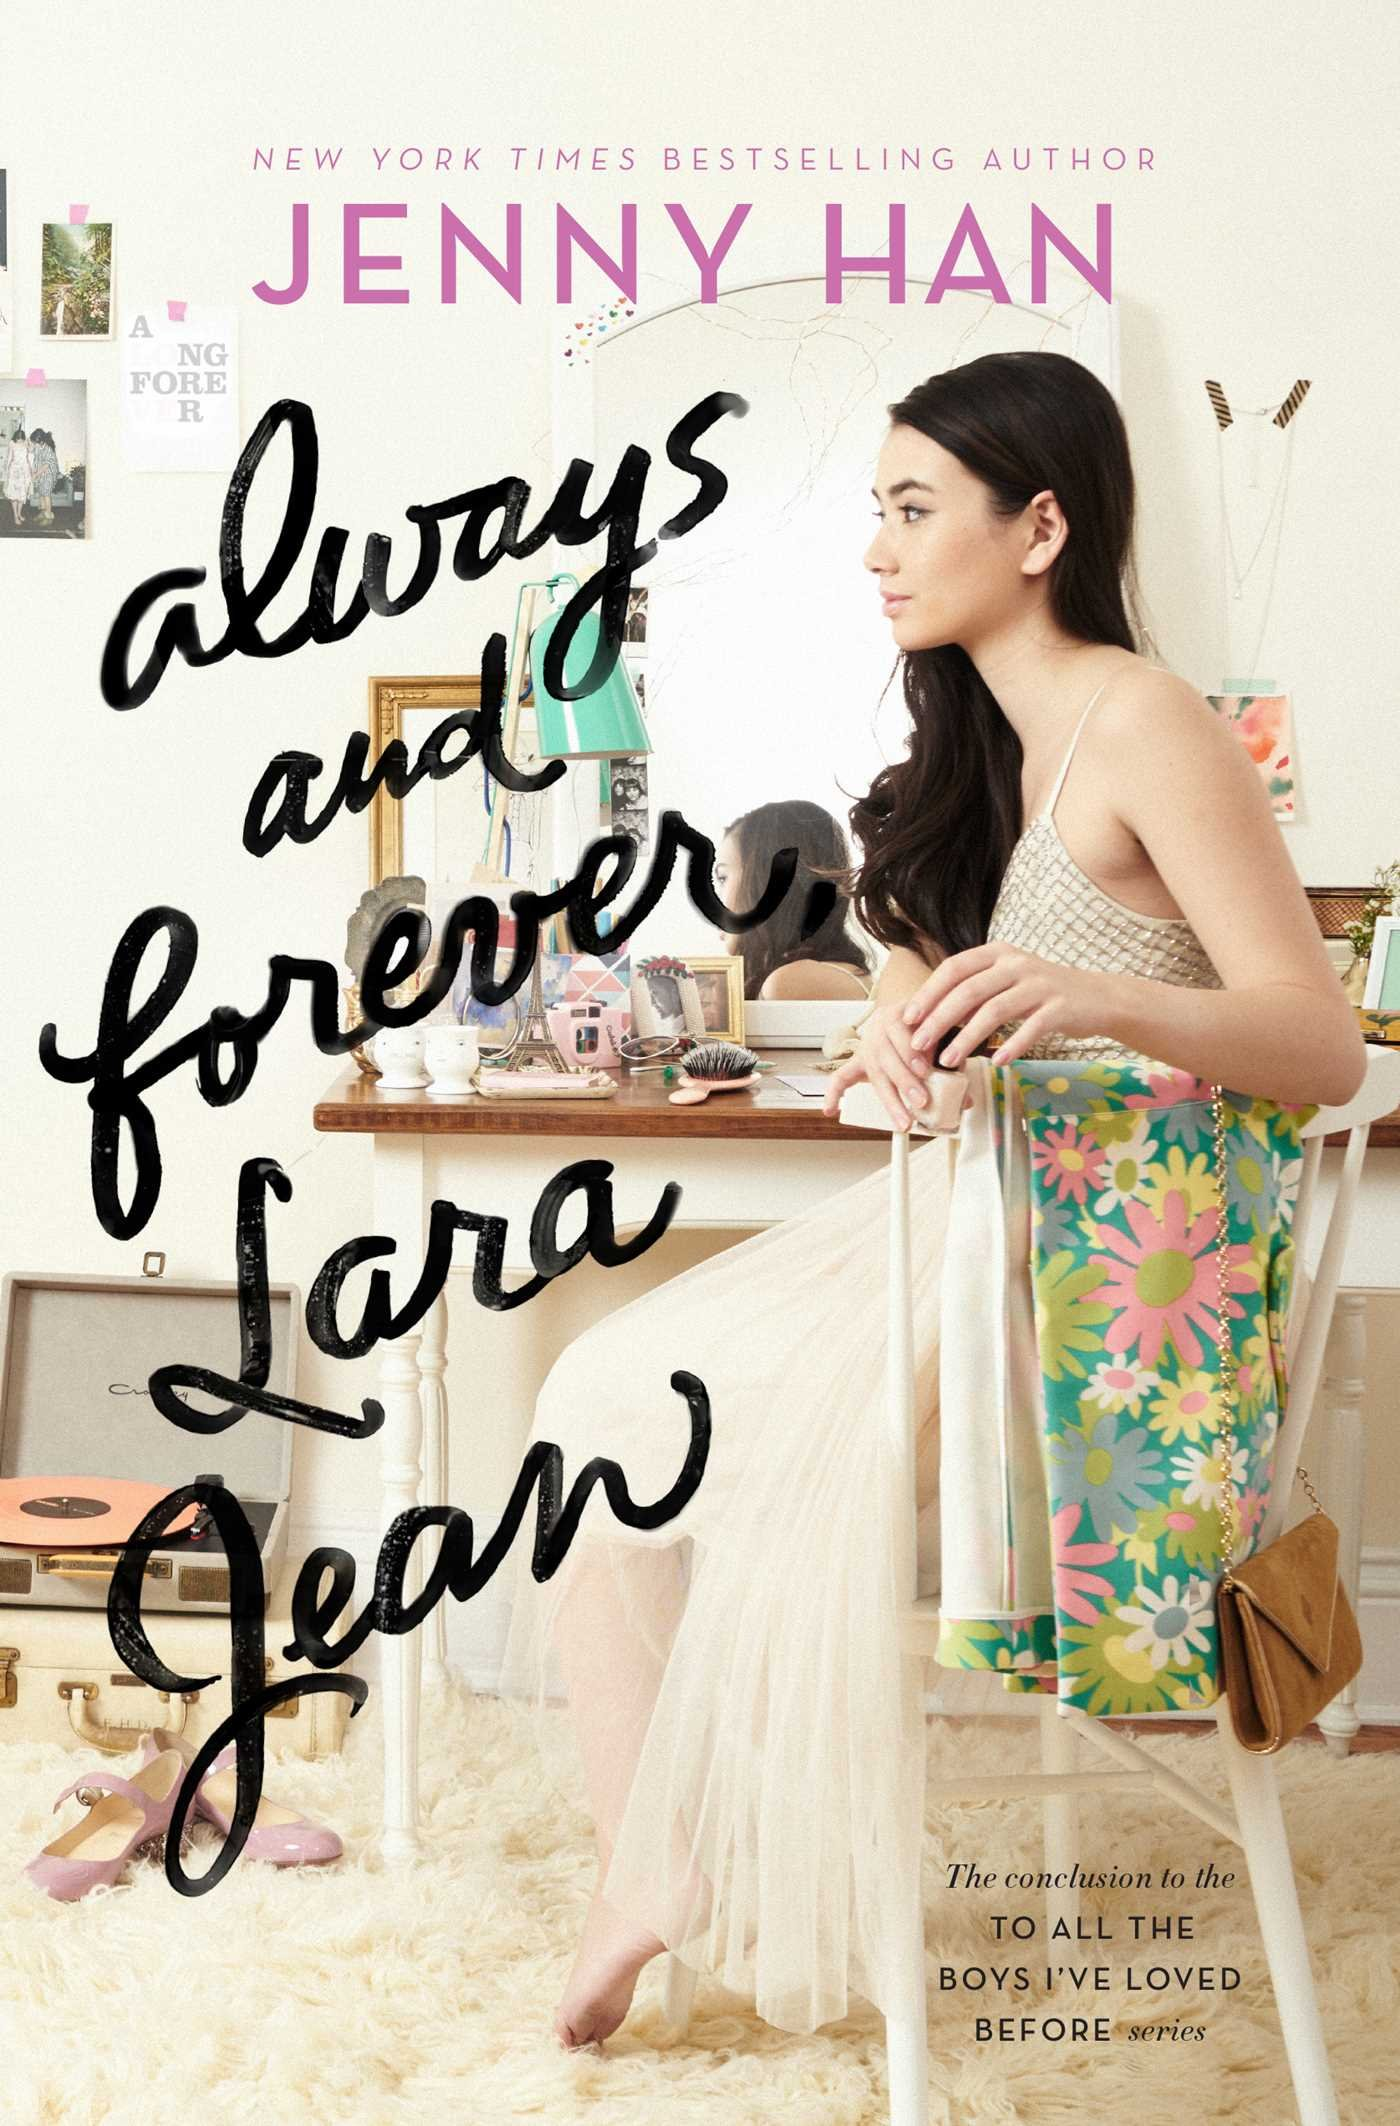 Always and Forever, Lara Jean by Jenny Han - Simon & Schuster Books for Young ReadersFor people hungry for complex and dimensional female characters for young audiences—Lucia, External Relations Manager